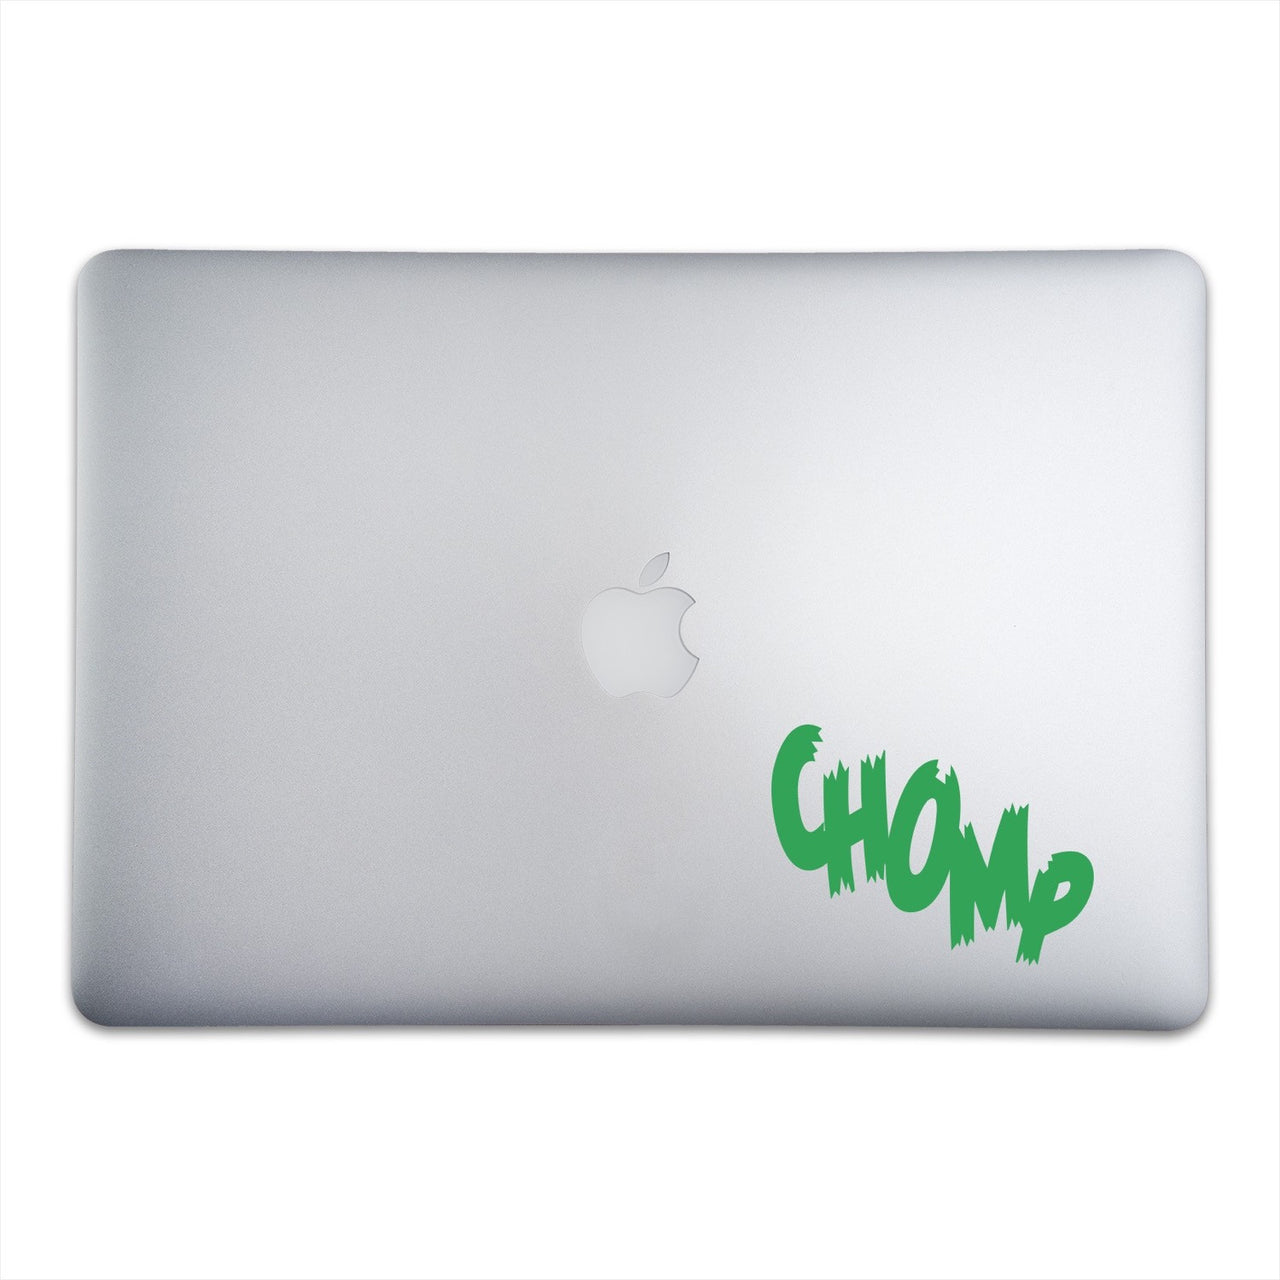 CHOMP Sticker for MacBooks and Apple Devices On A 15-Inch Macbook Pro